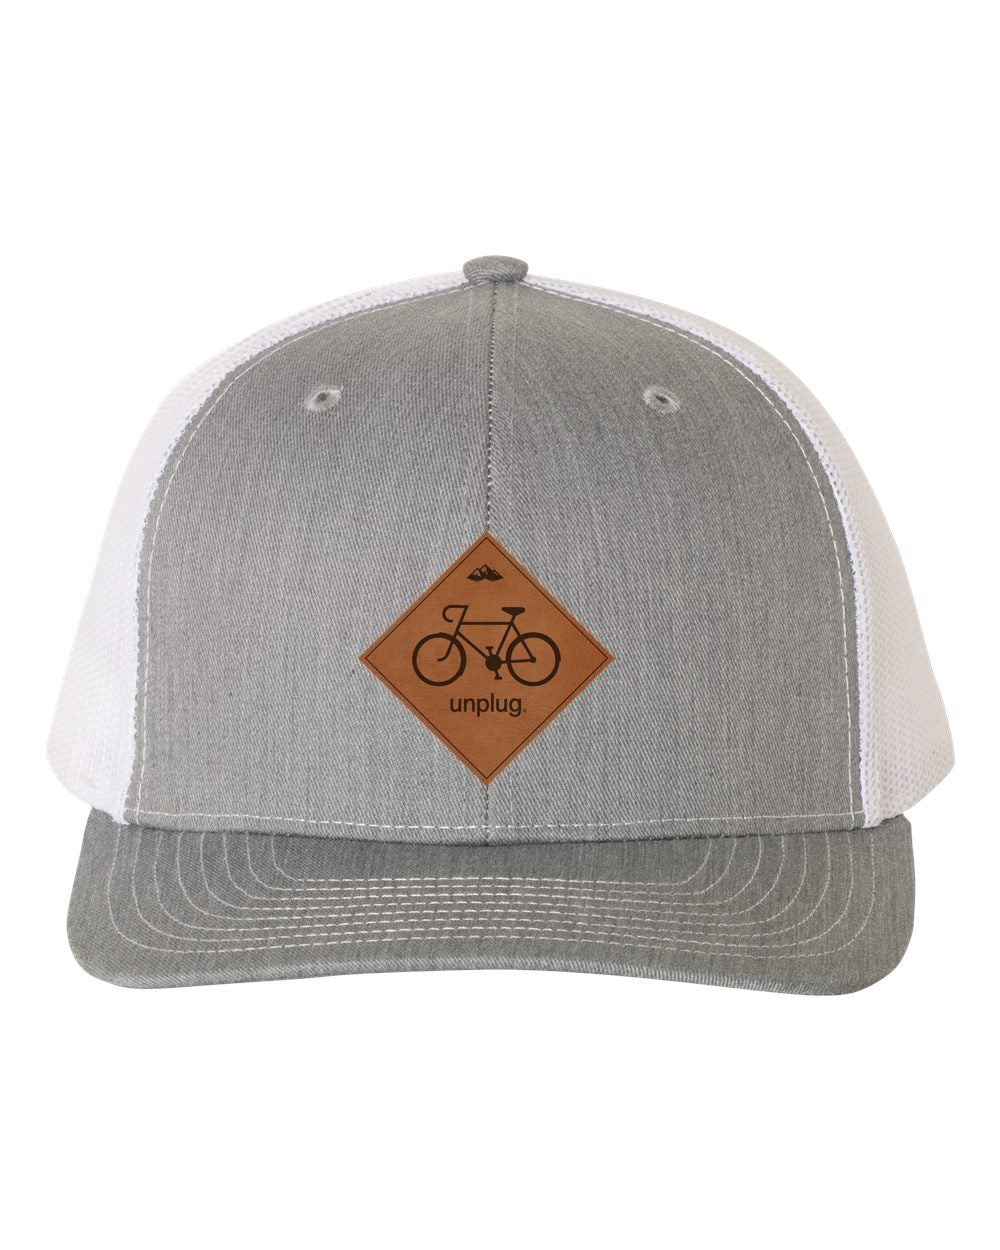 Road Bike Leather Patch Hat